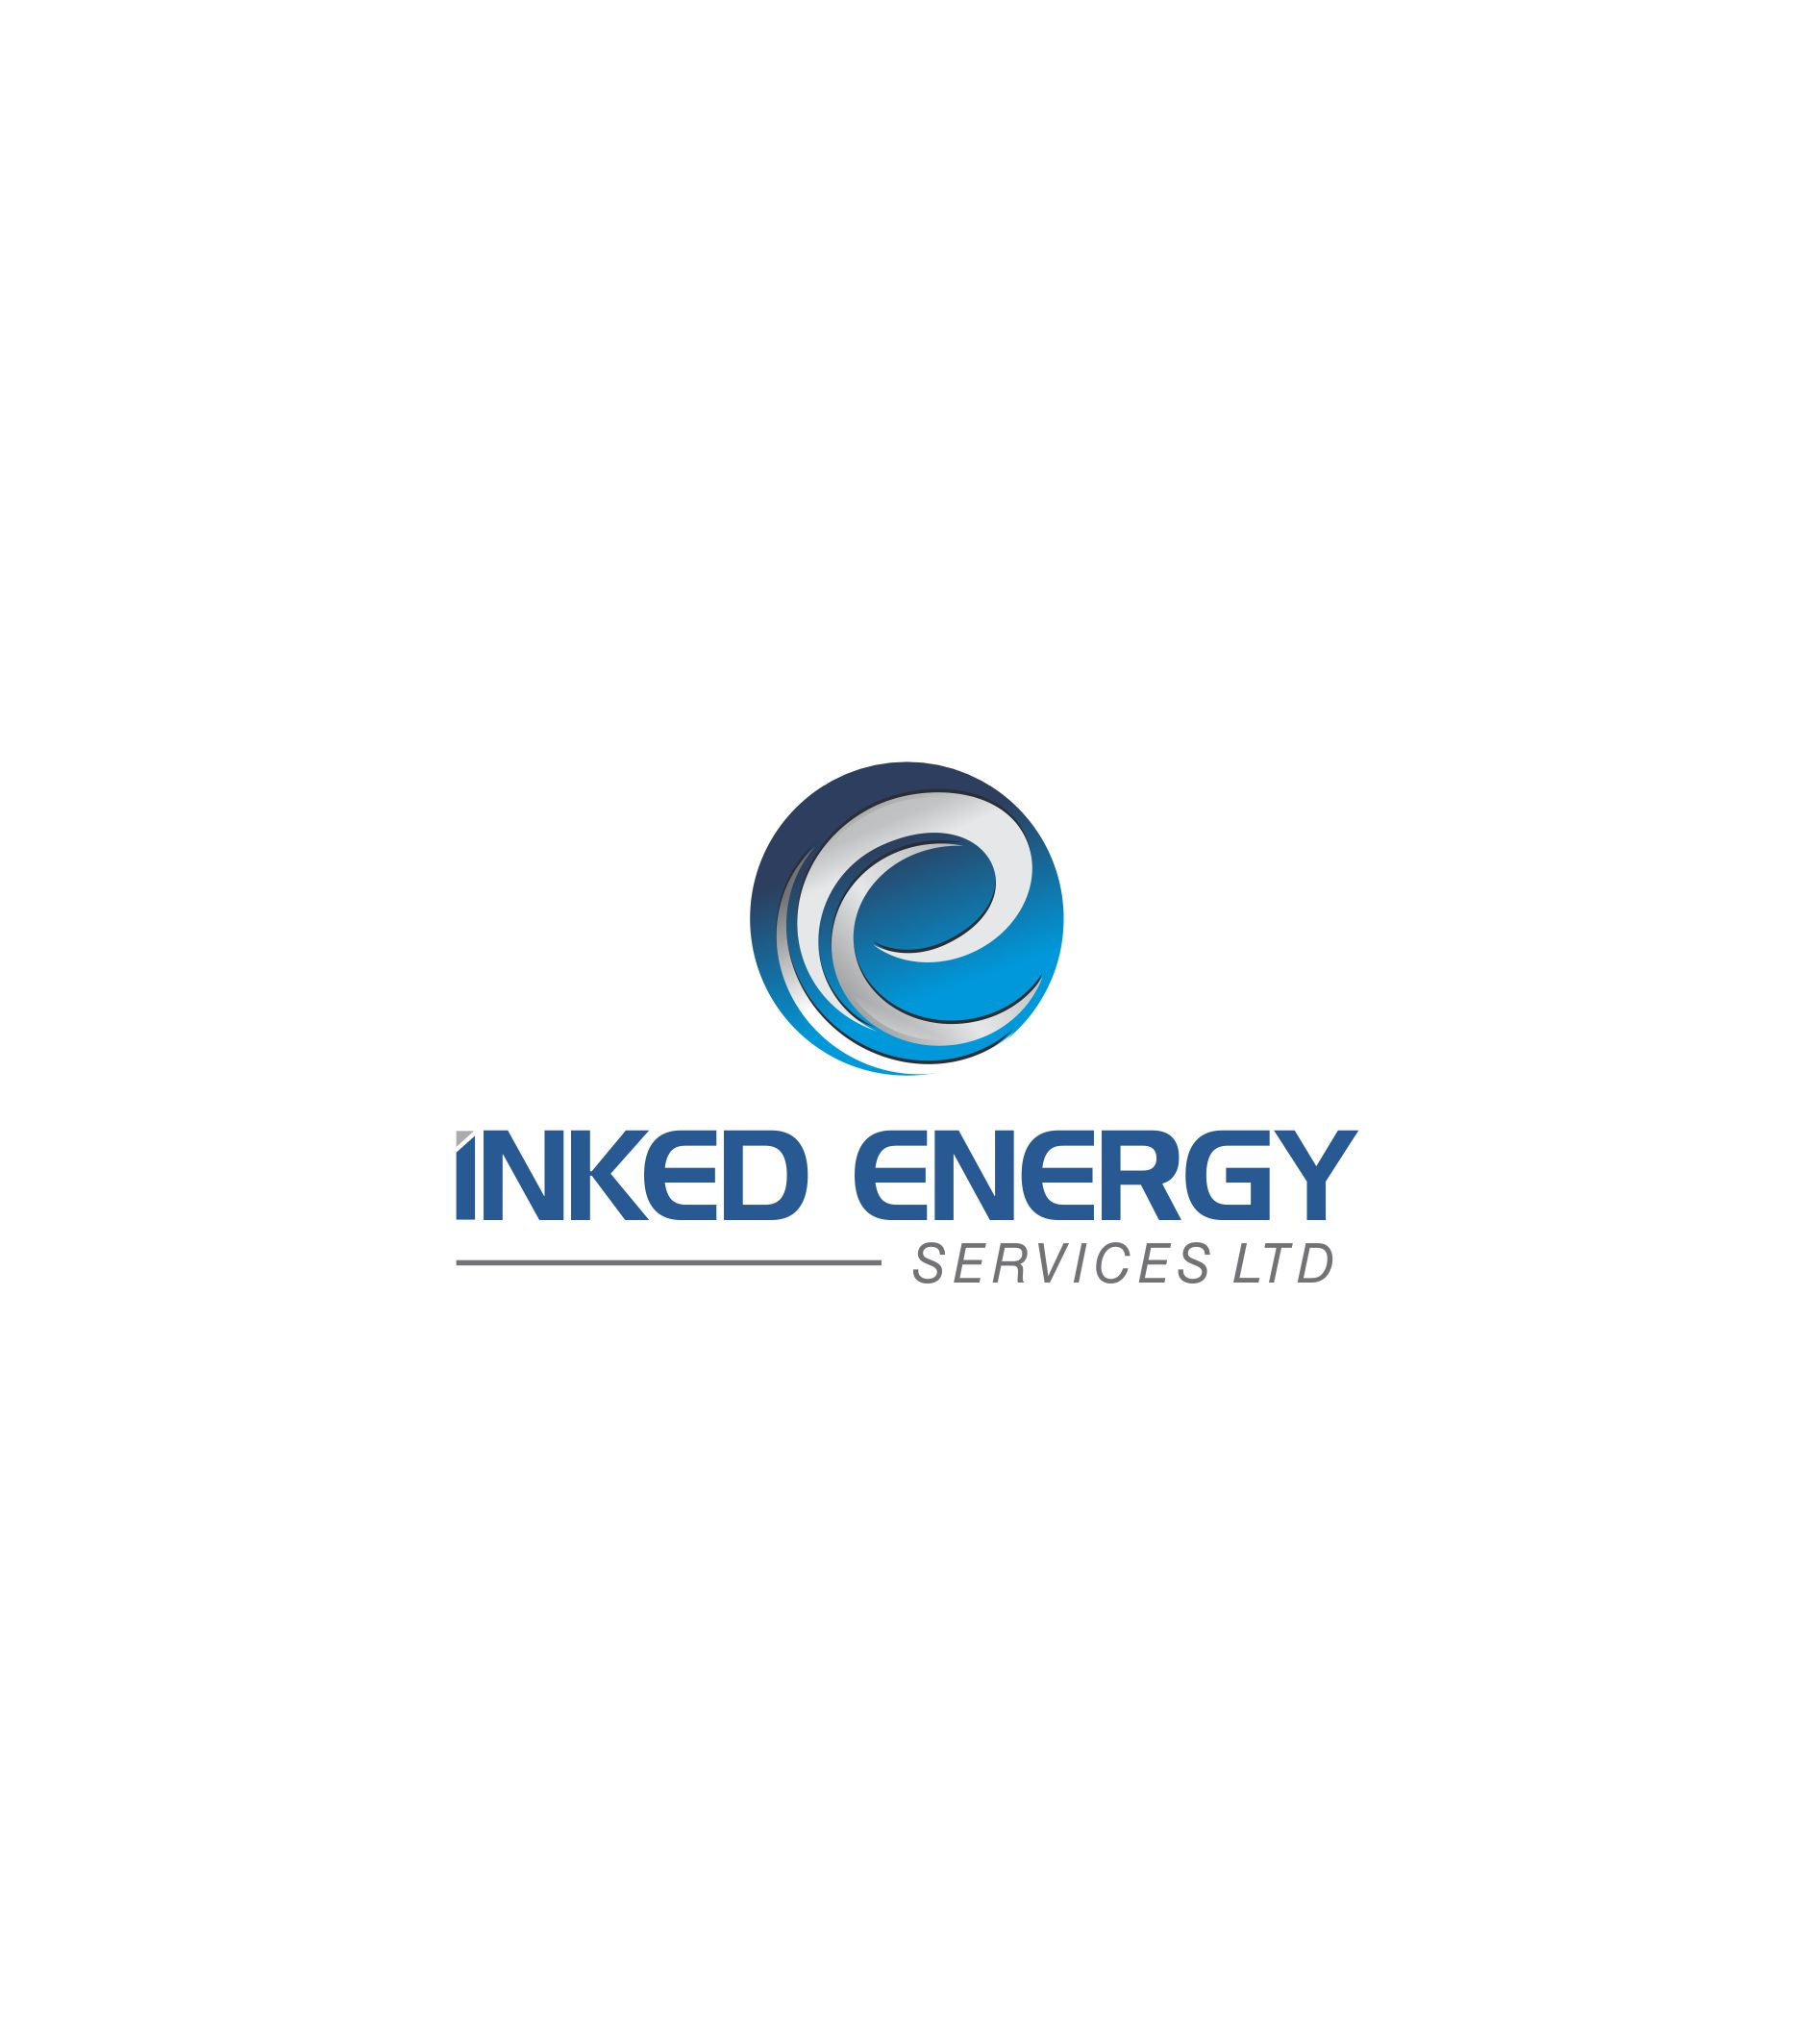 Logo Design by Raymond Garcia - Entry No. 51 in the Logo Design Contest Creative Logo Design for INKED ENERGY SERVICES LTD.